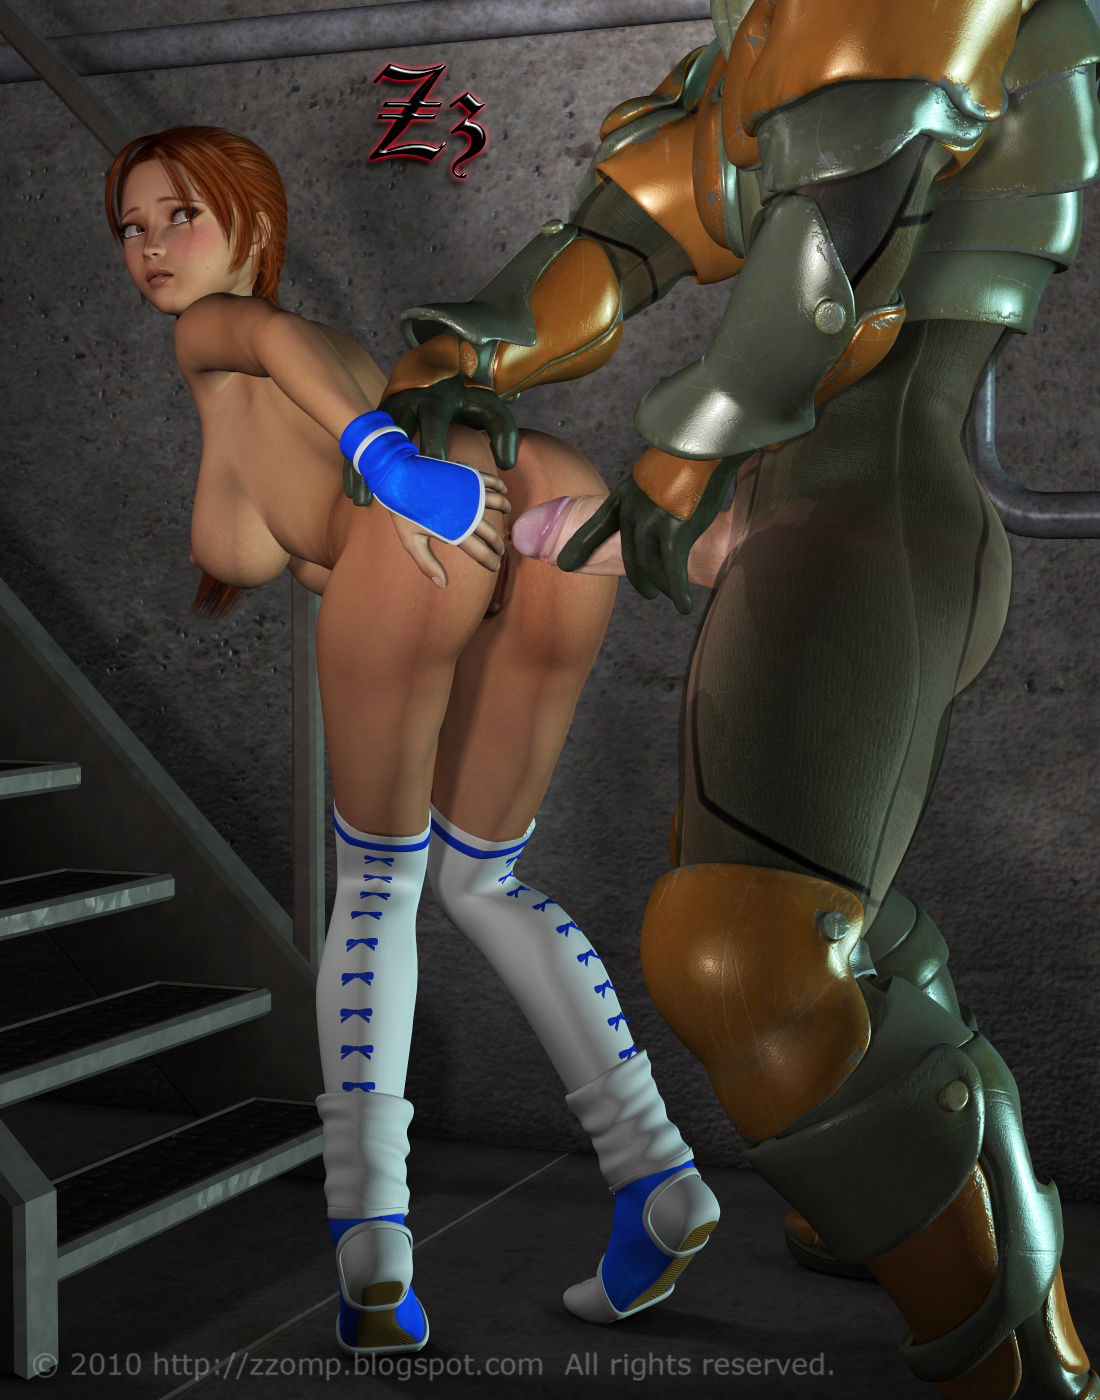 3d hentai world screenshot erotic photo